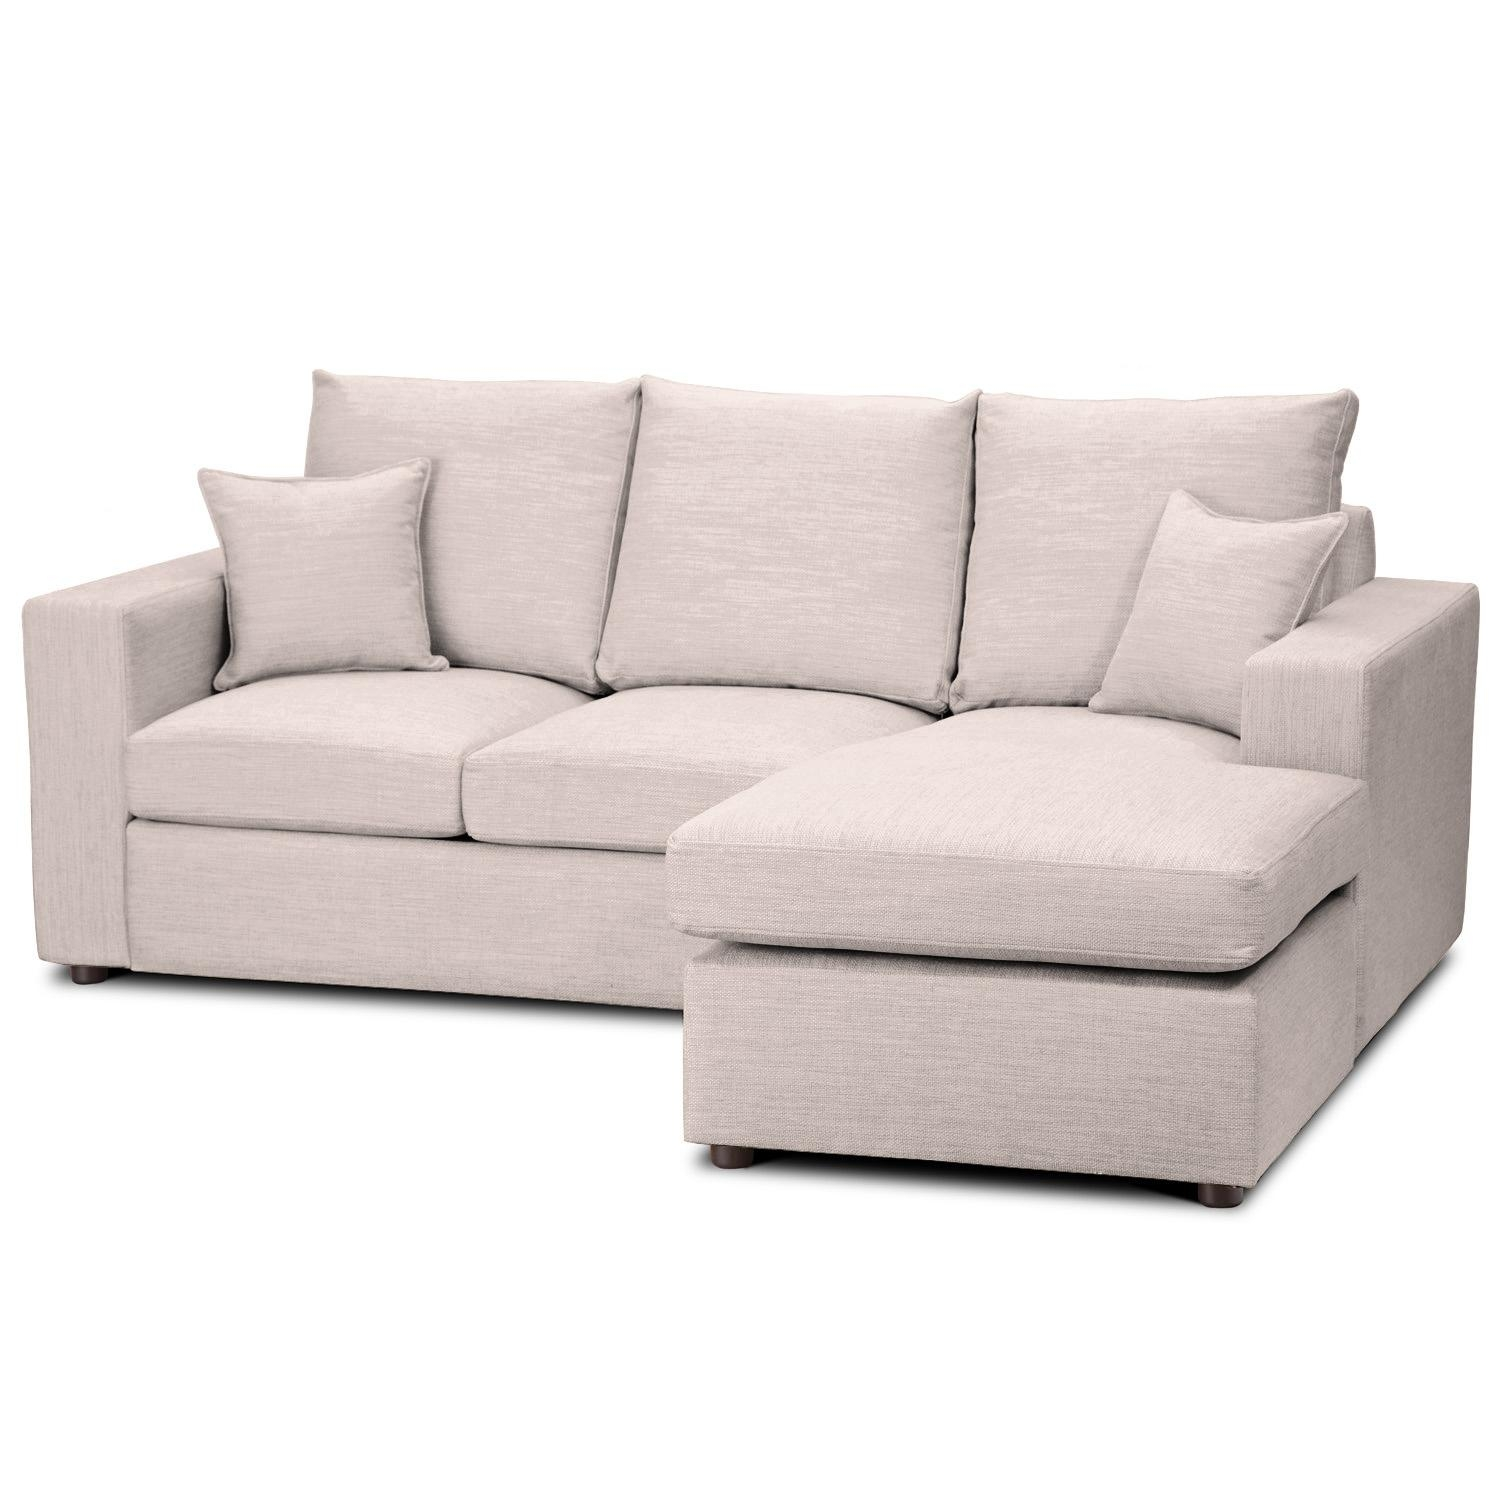 Furniture: Vivacious Chaise Sofa Bed With Softly Bed Foam For Pertaining To Cushion Sofa Beds (View 5 of 23)